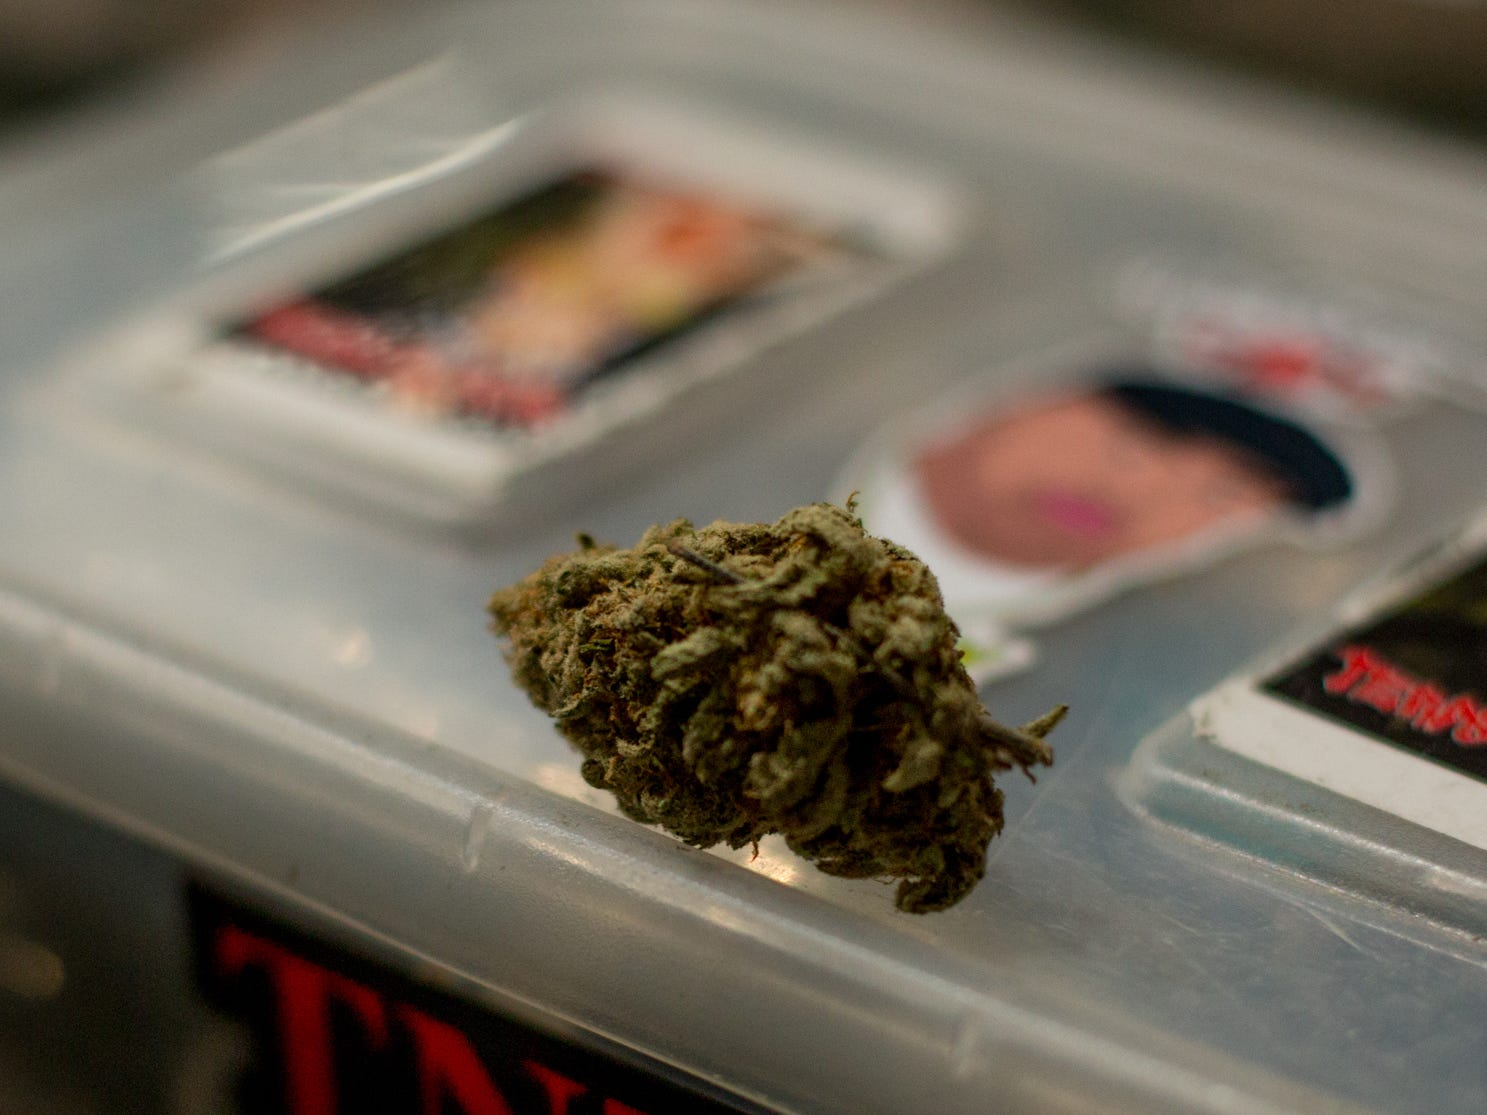 A bud rests on a storage box at the party.